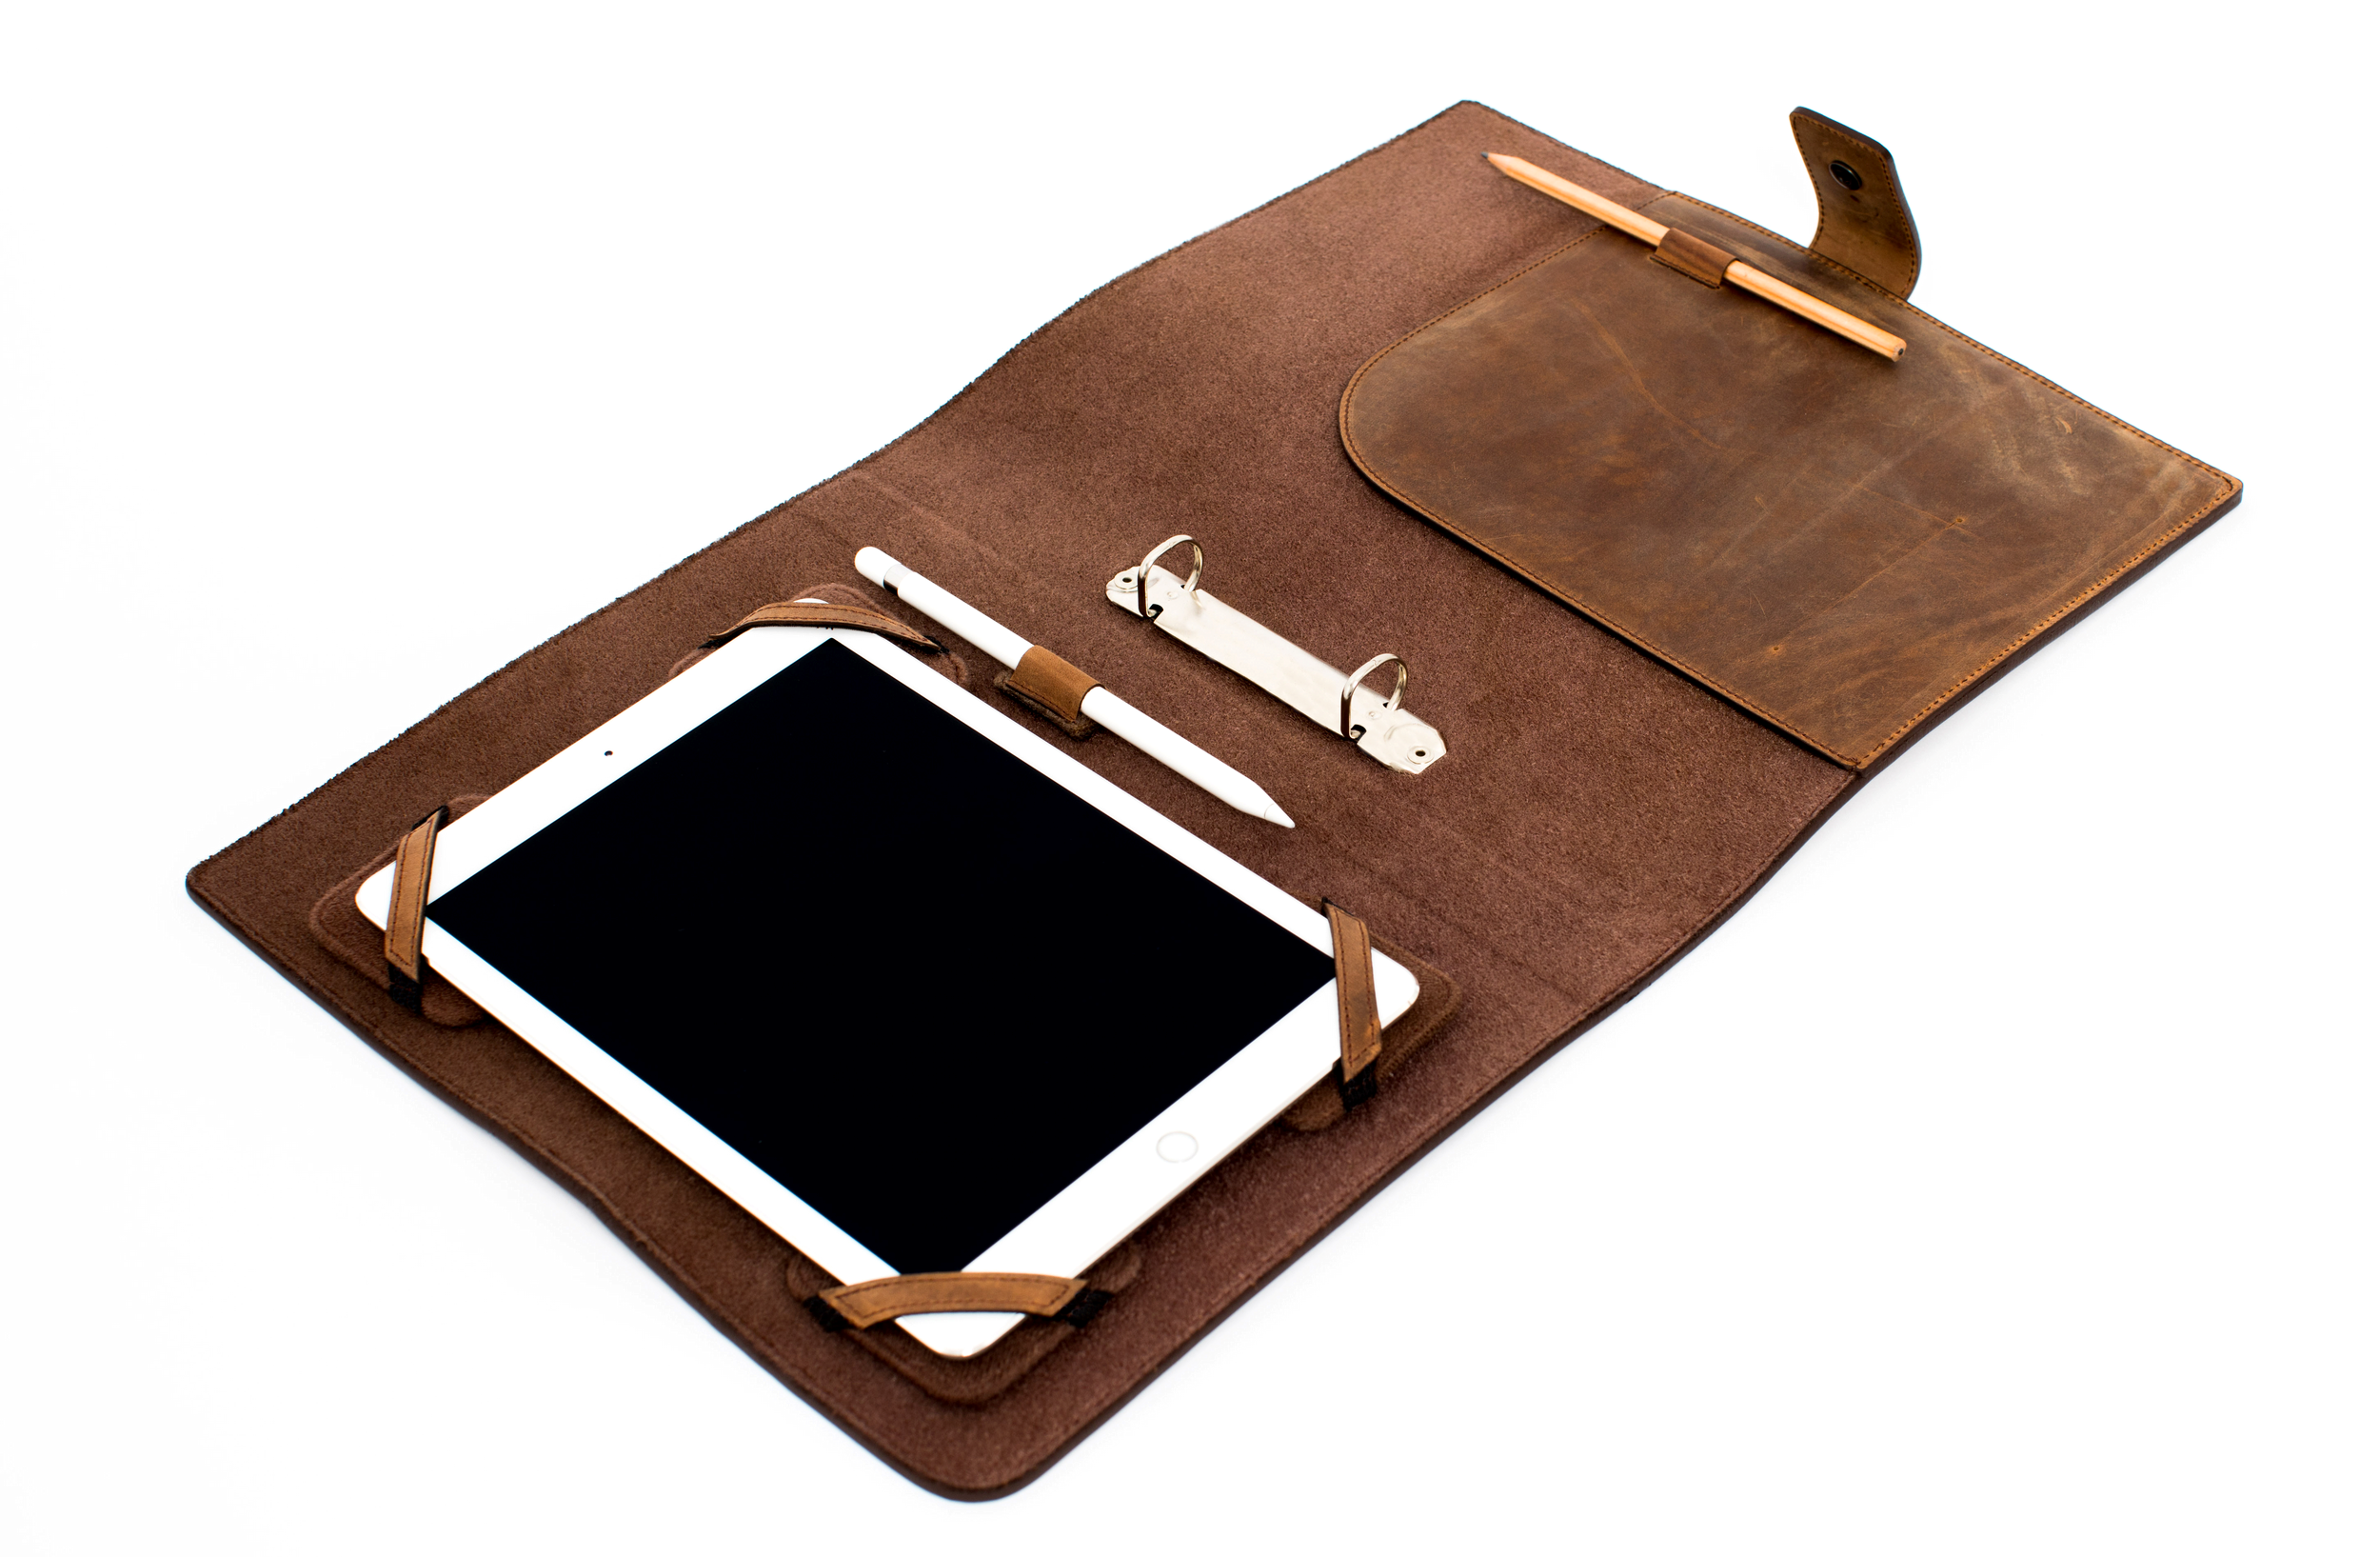 HANDSTATT Leather case 'business' for iPads/Tablets vintage brown